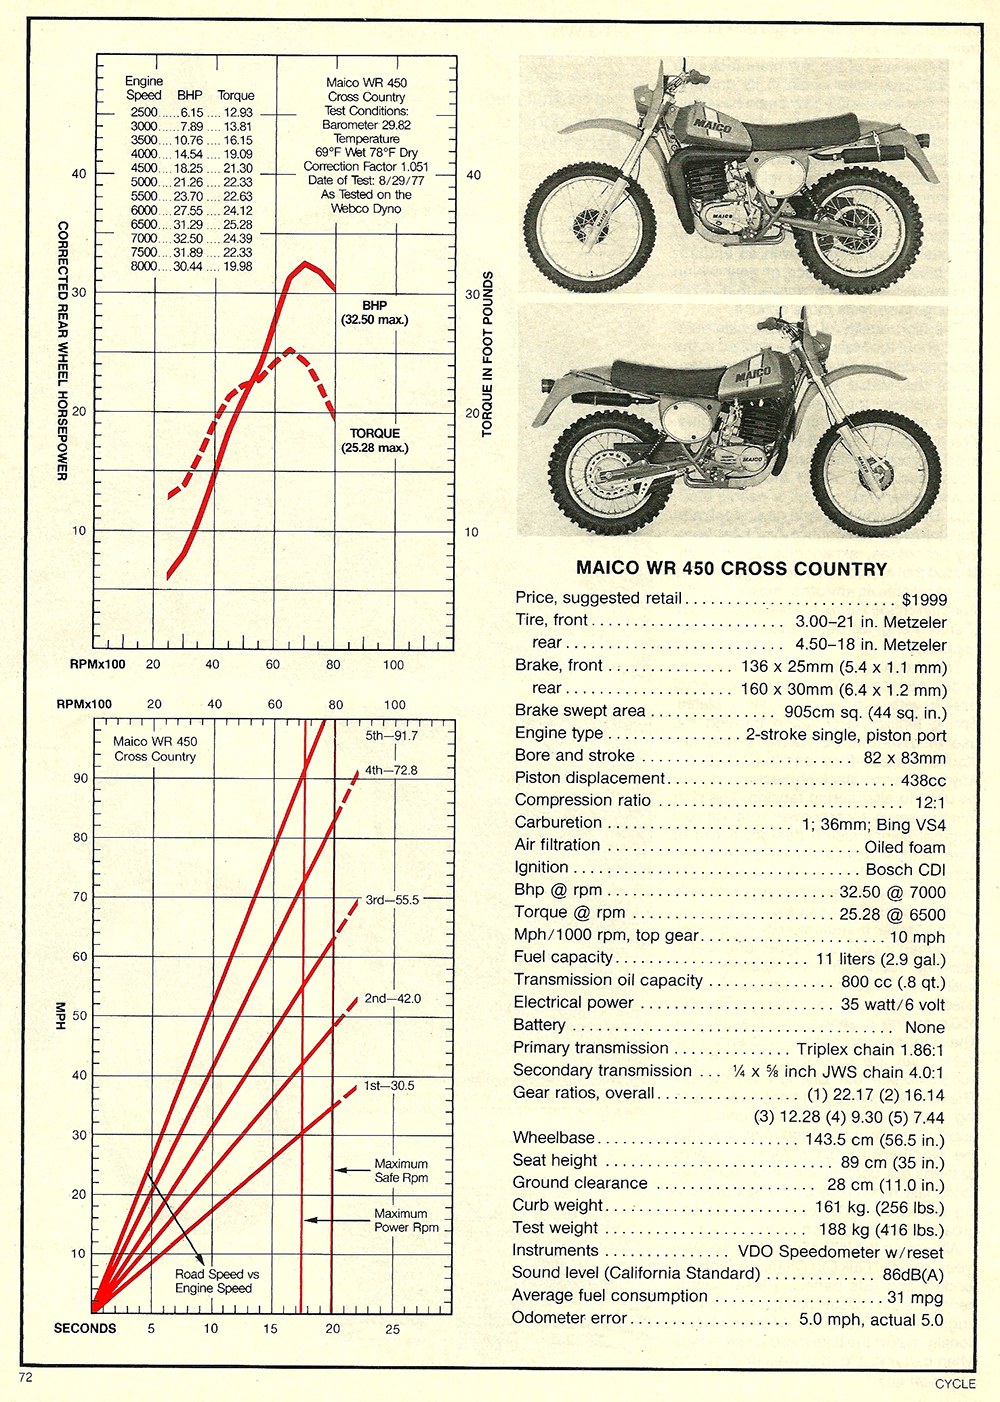 1977 Maico WR450 Cross Country XC road test 5.jpg